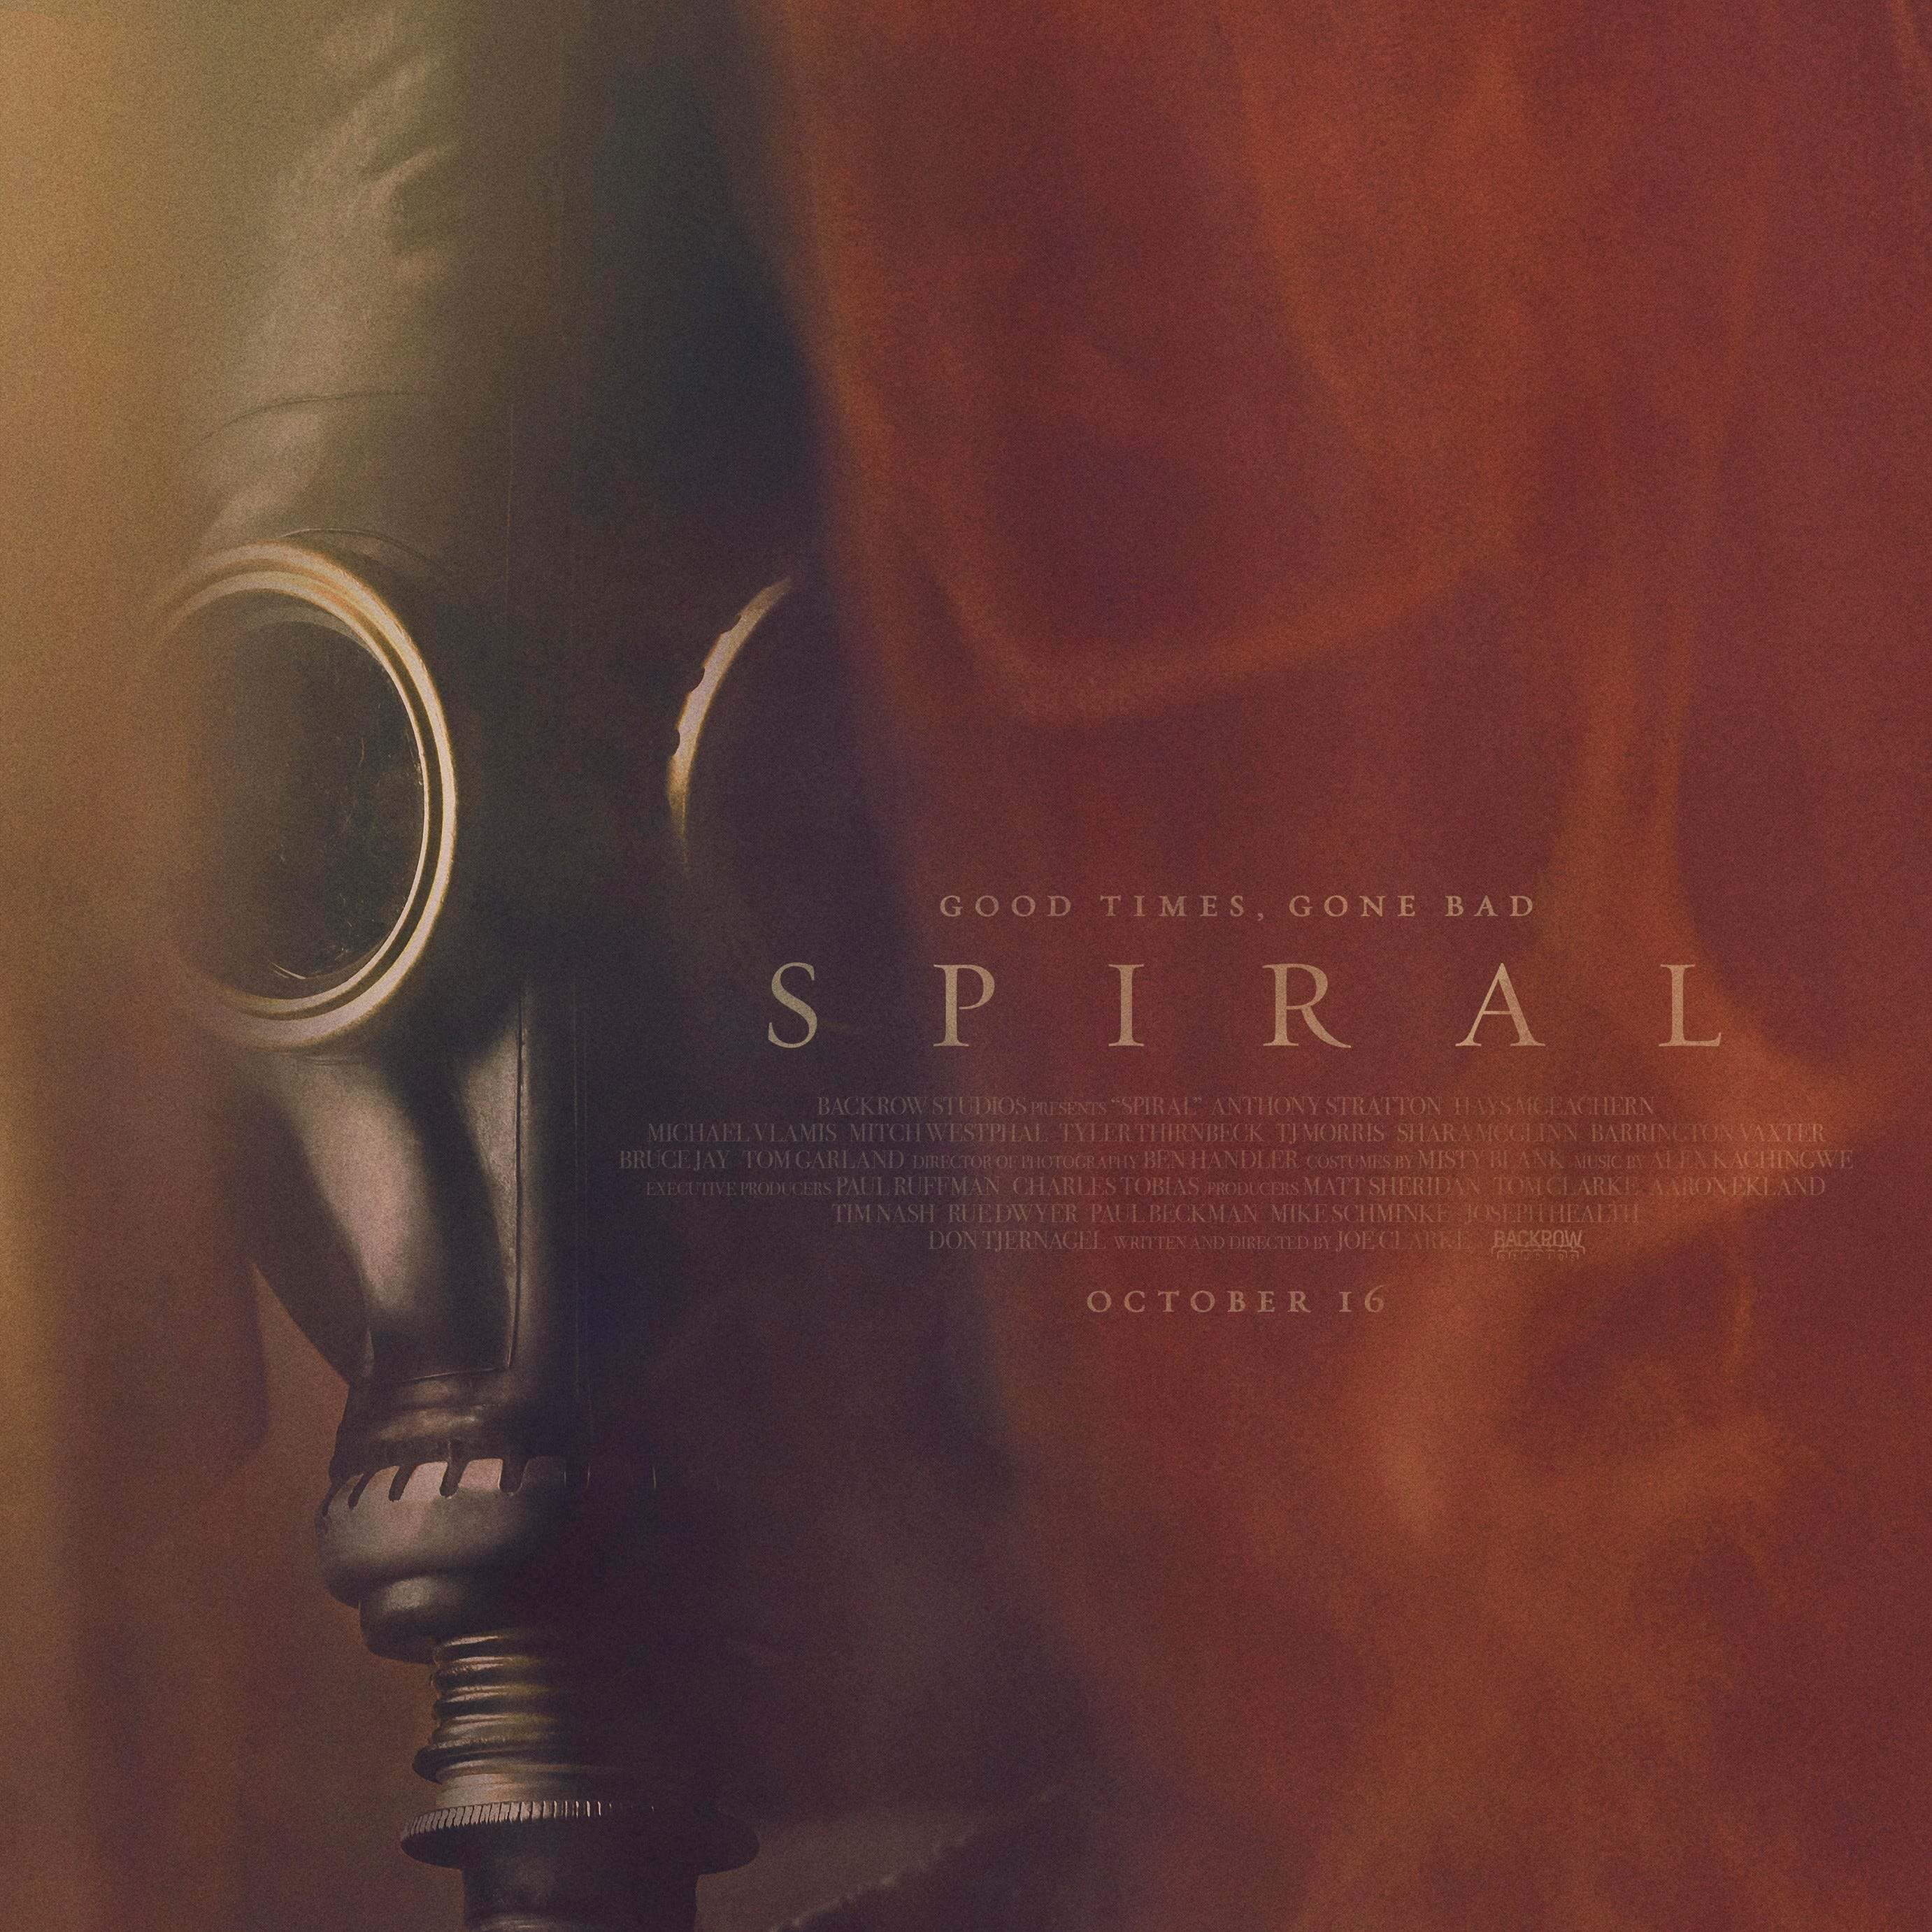 Iowa City-made horror, thriller movie 'Spiral' to premiere in I.C. before Halloween